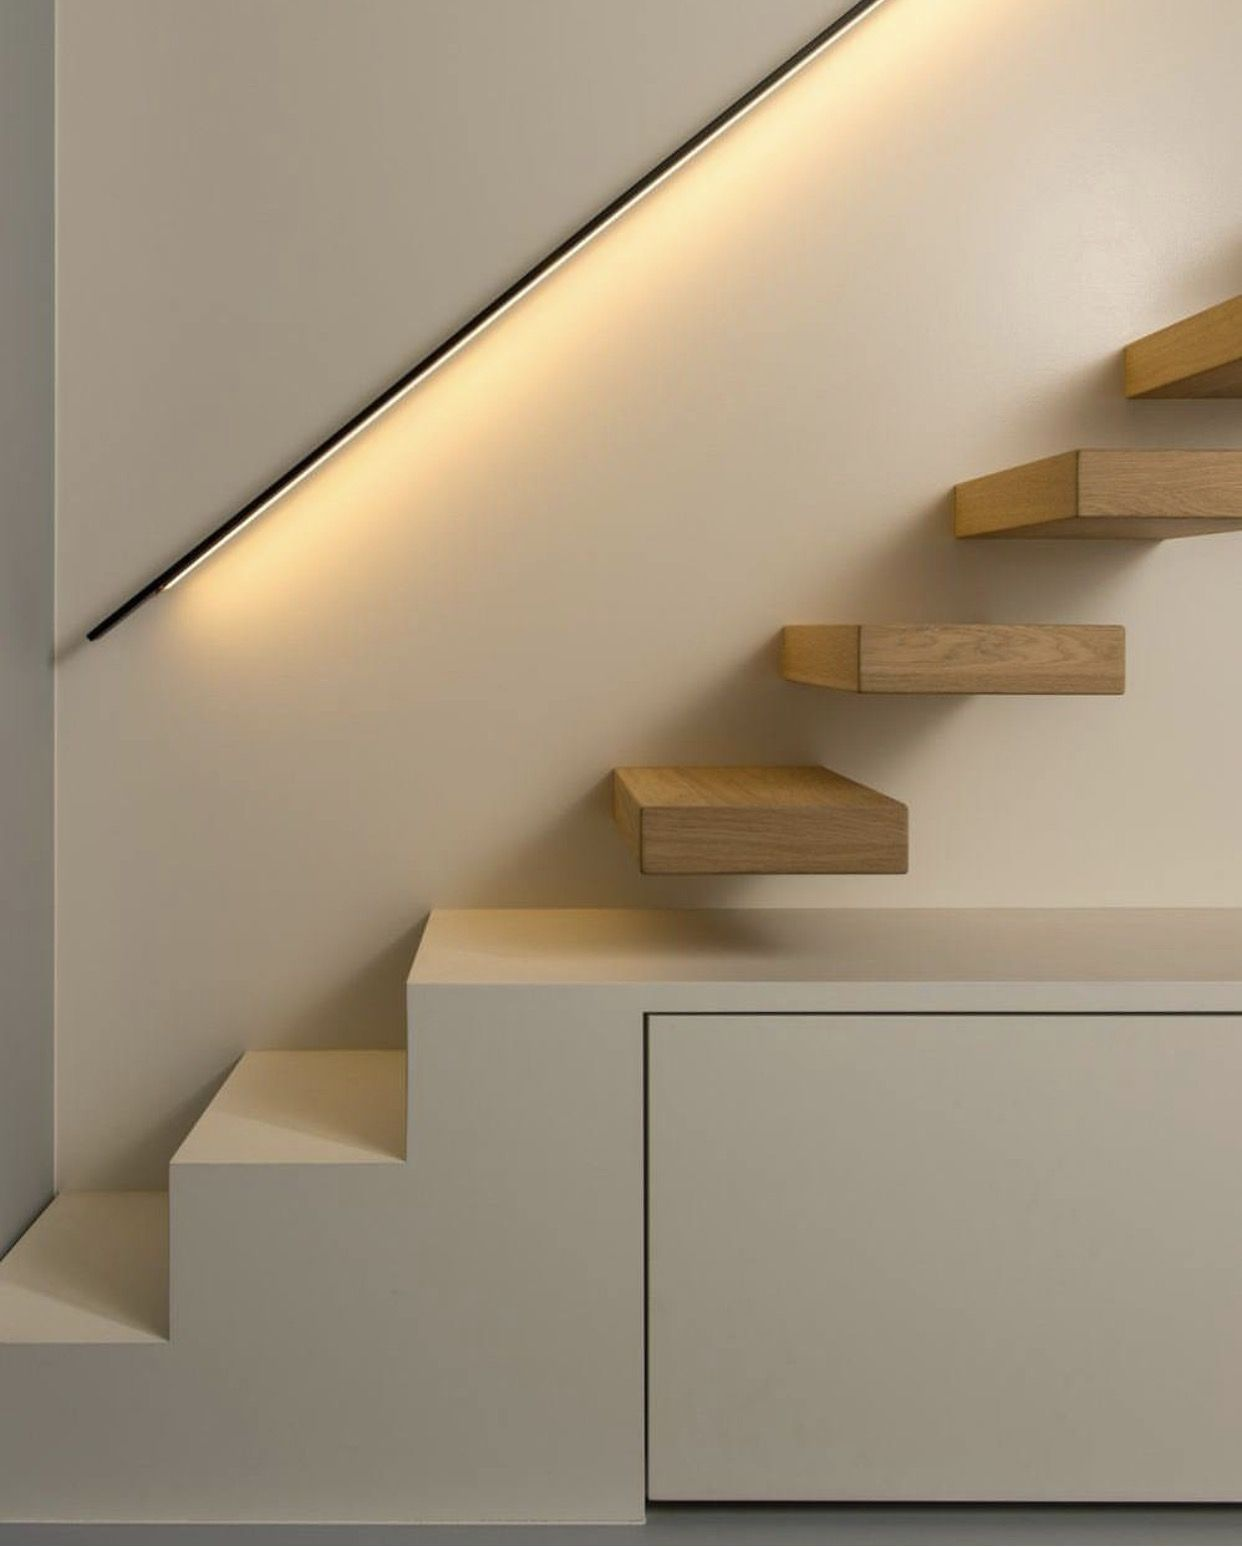 Stair Railing Light: 10 Most Popular Light For Stairways Ideas